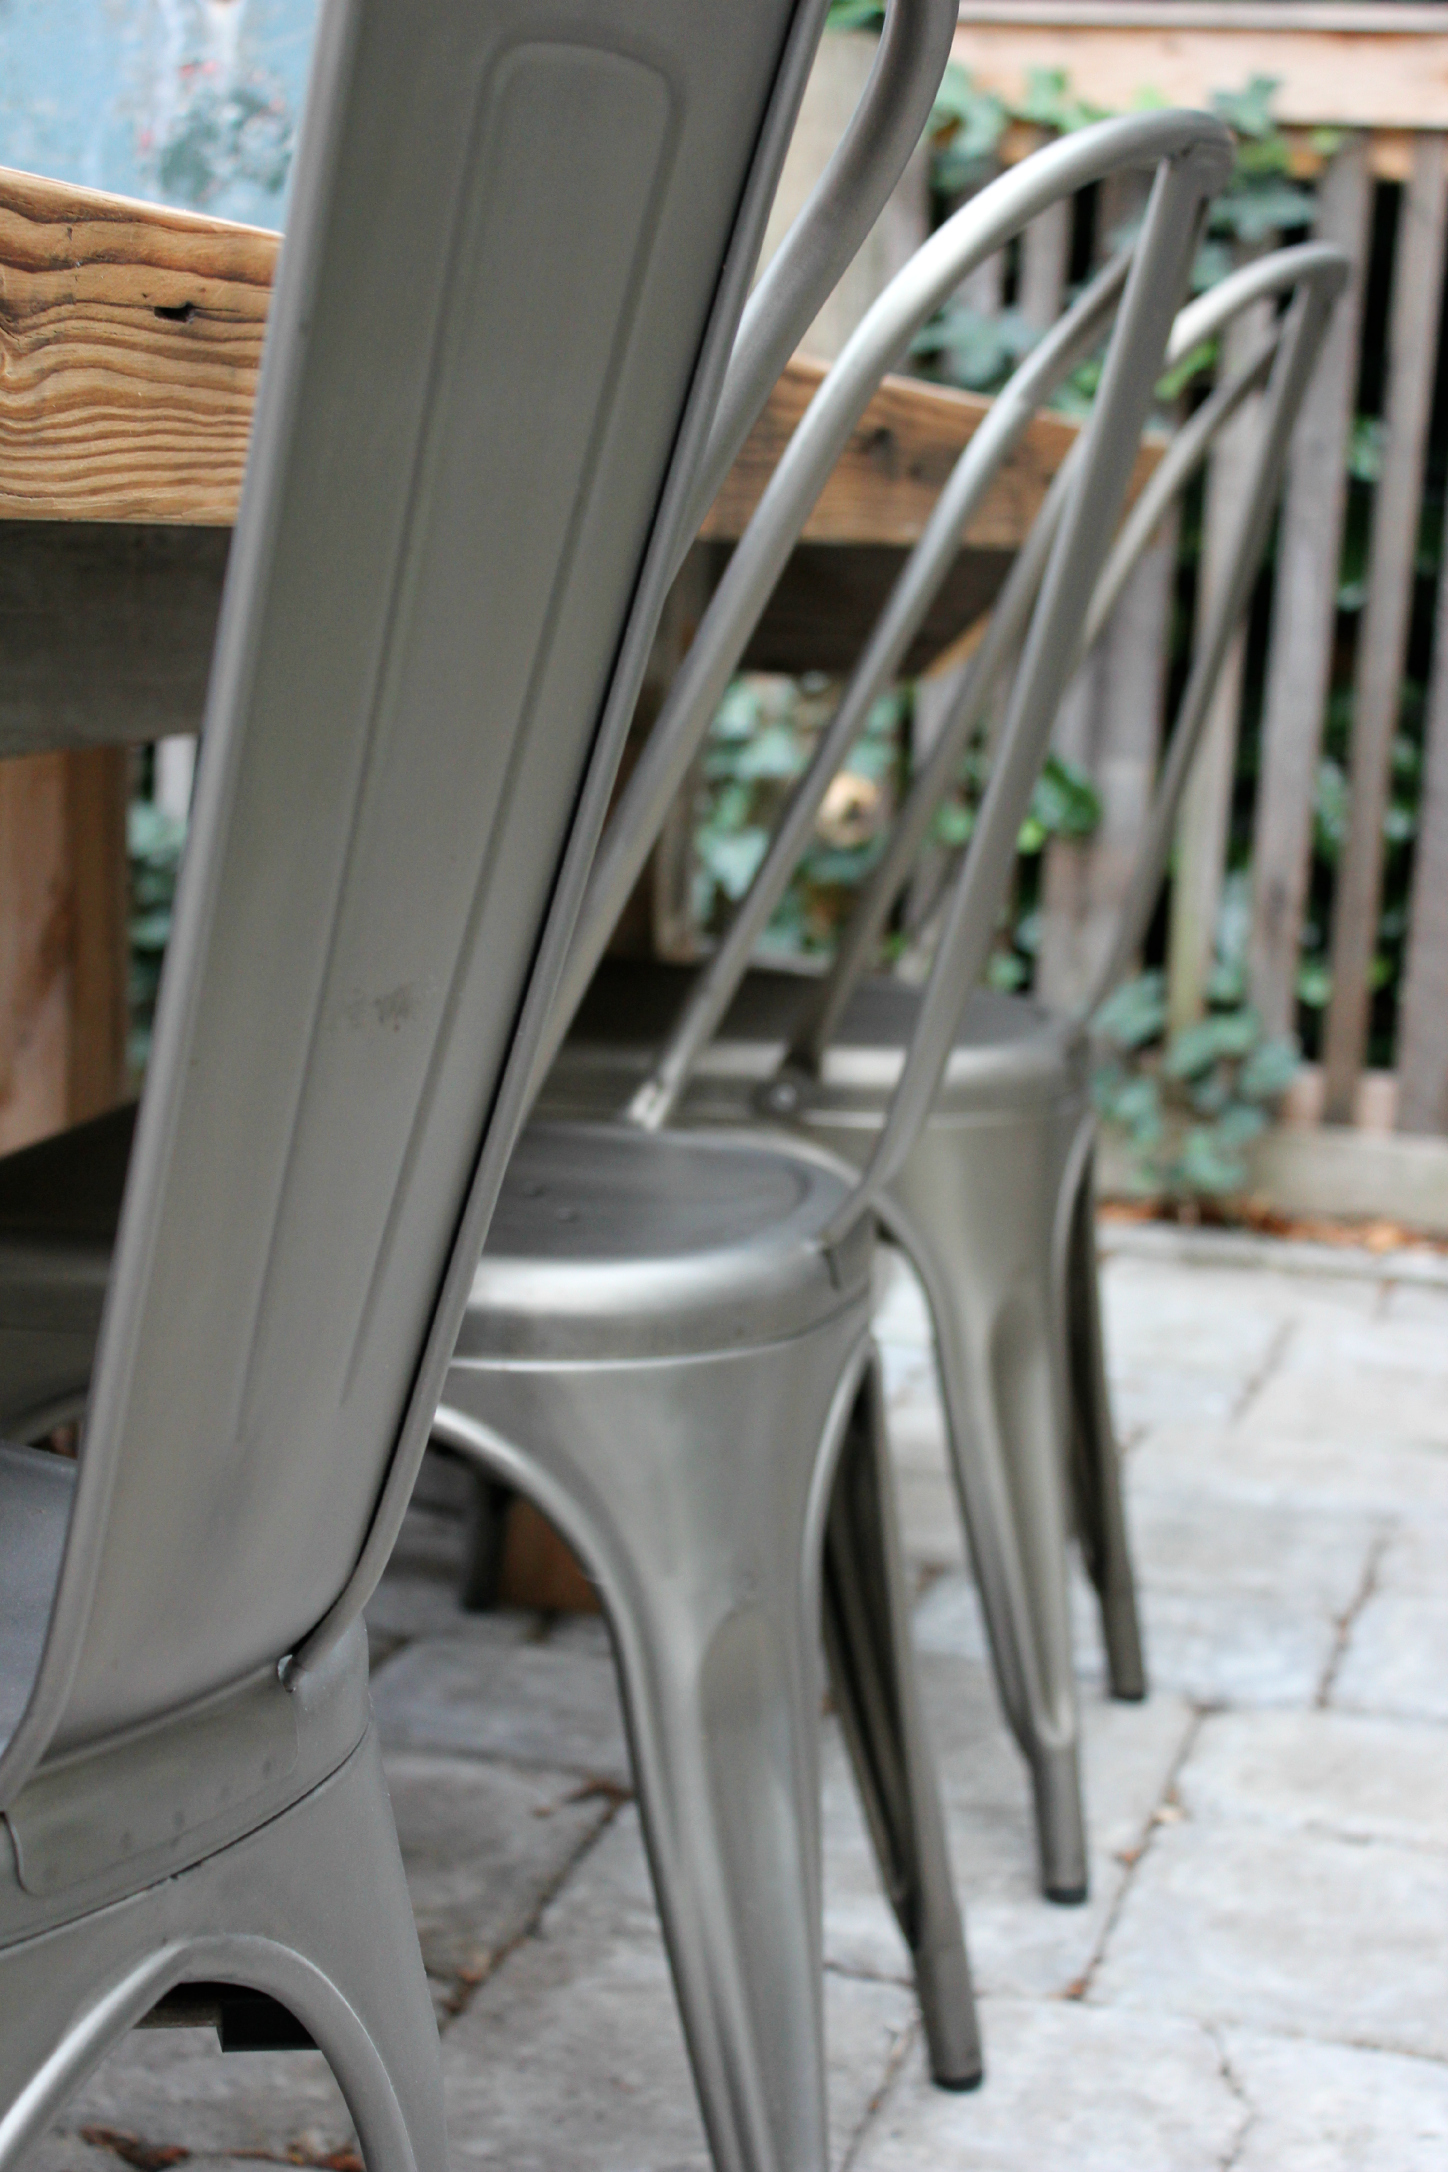 The-Grit-and-Polish-Wallingford-Patio-table-chairs1.jpg